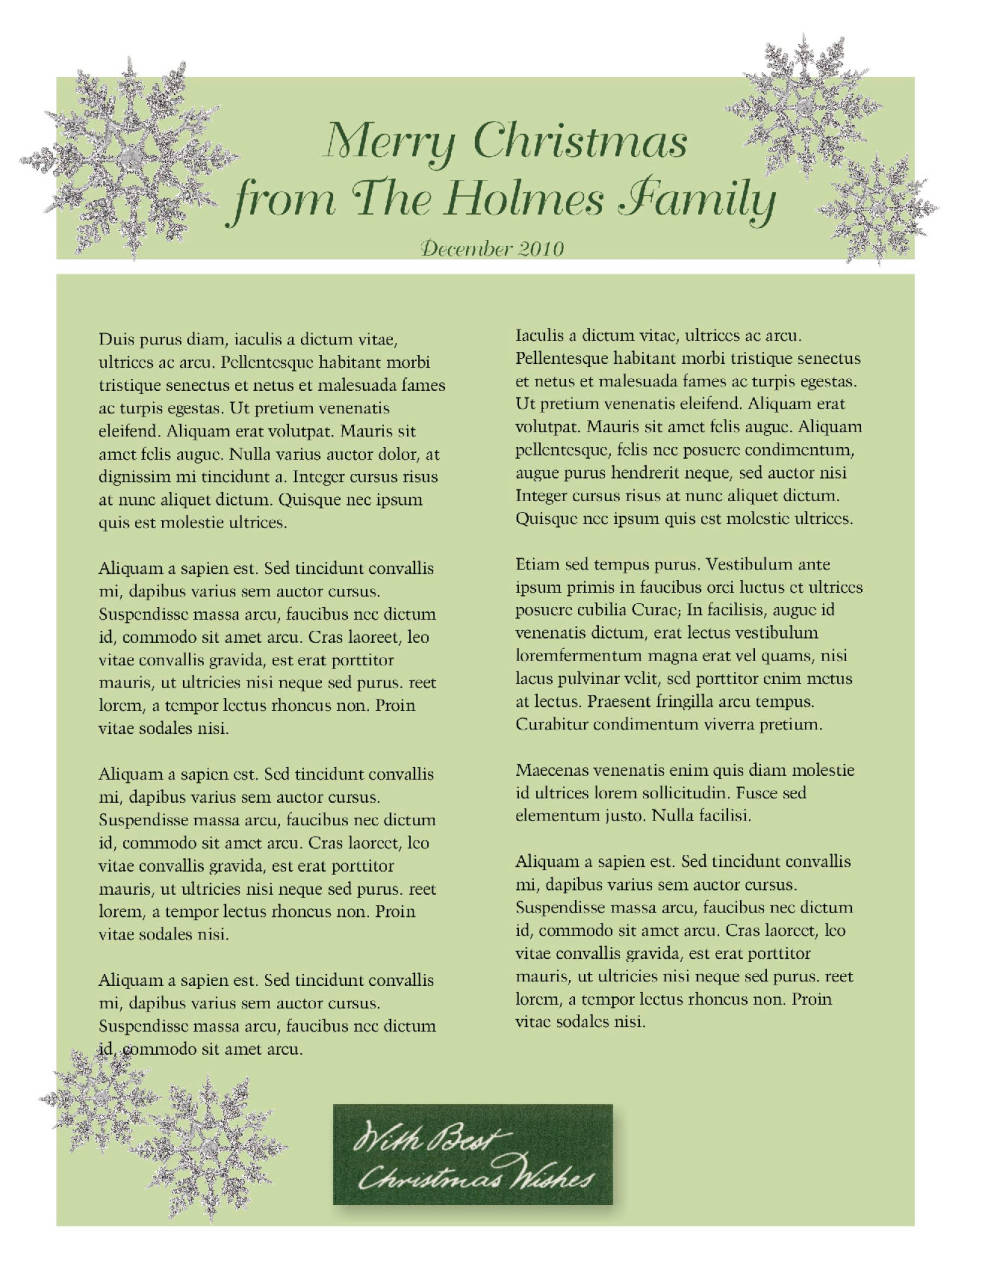 Annual Christmas Newsletter is our Family Journal